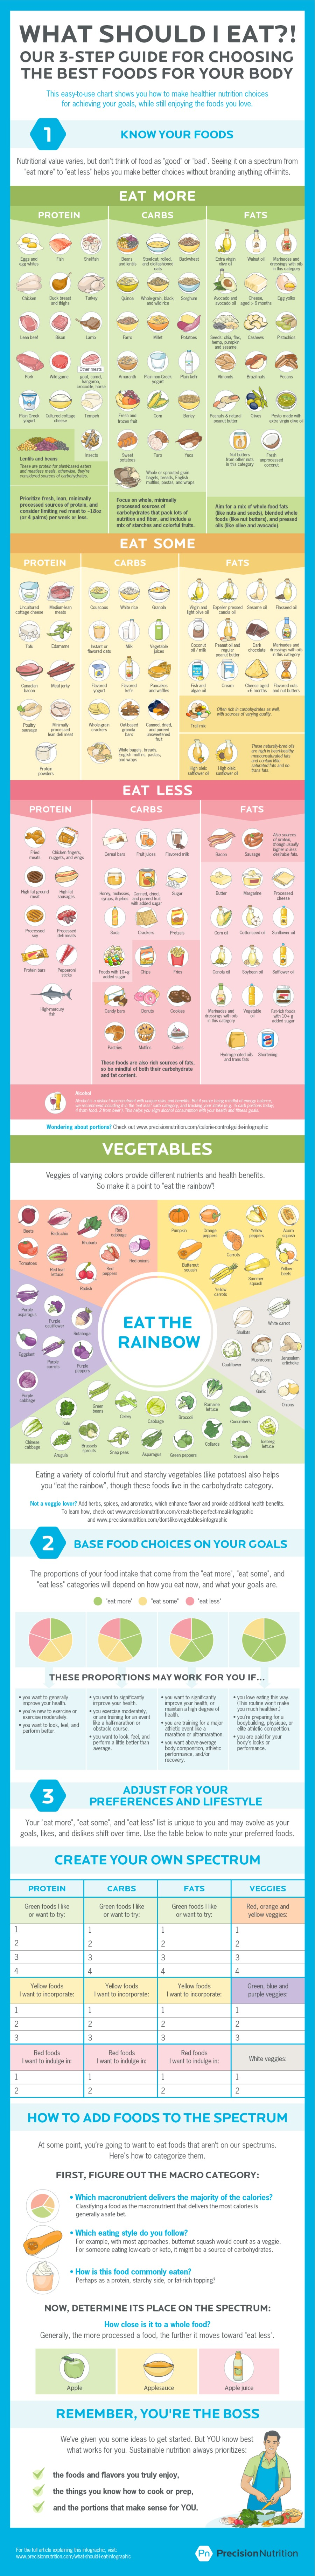 """WHAT SHOULD 